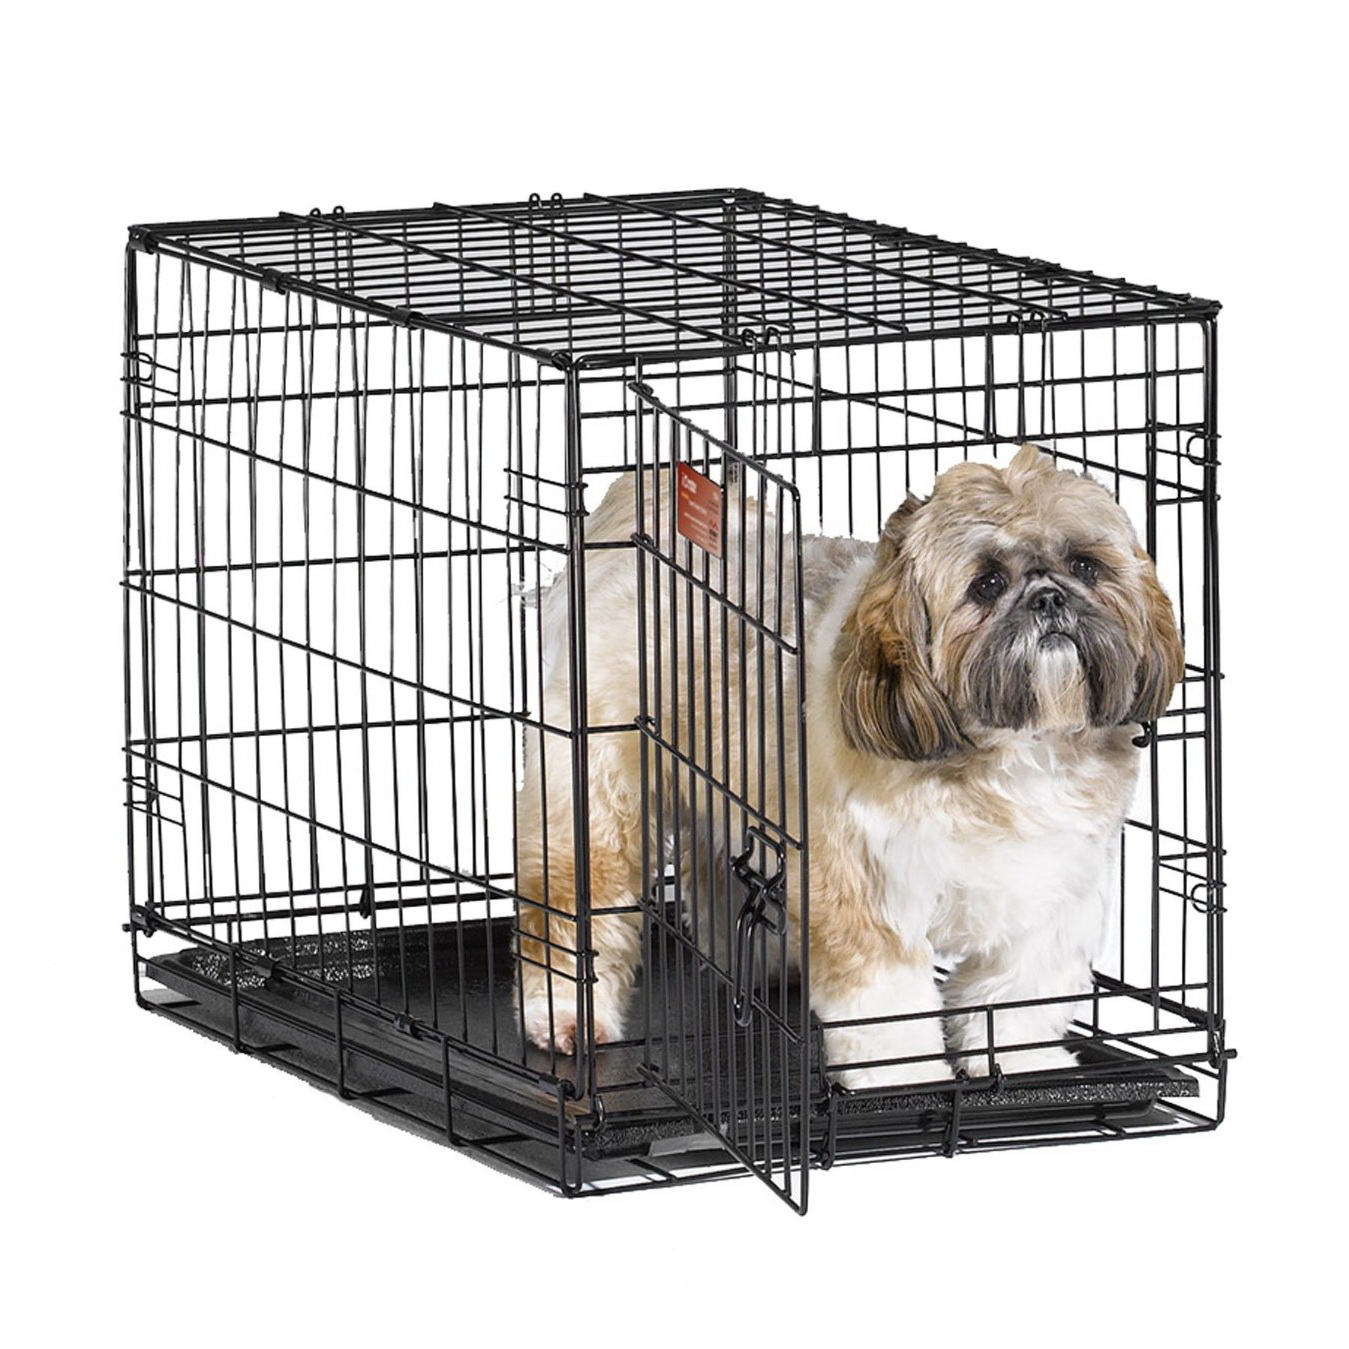 MidWest iCrate Folding Metal Dog Crate – Various Sizes